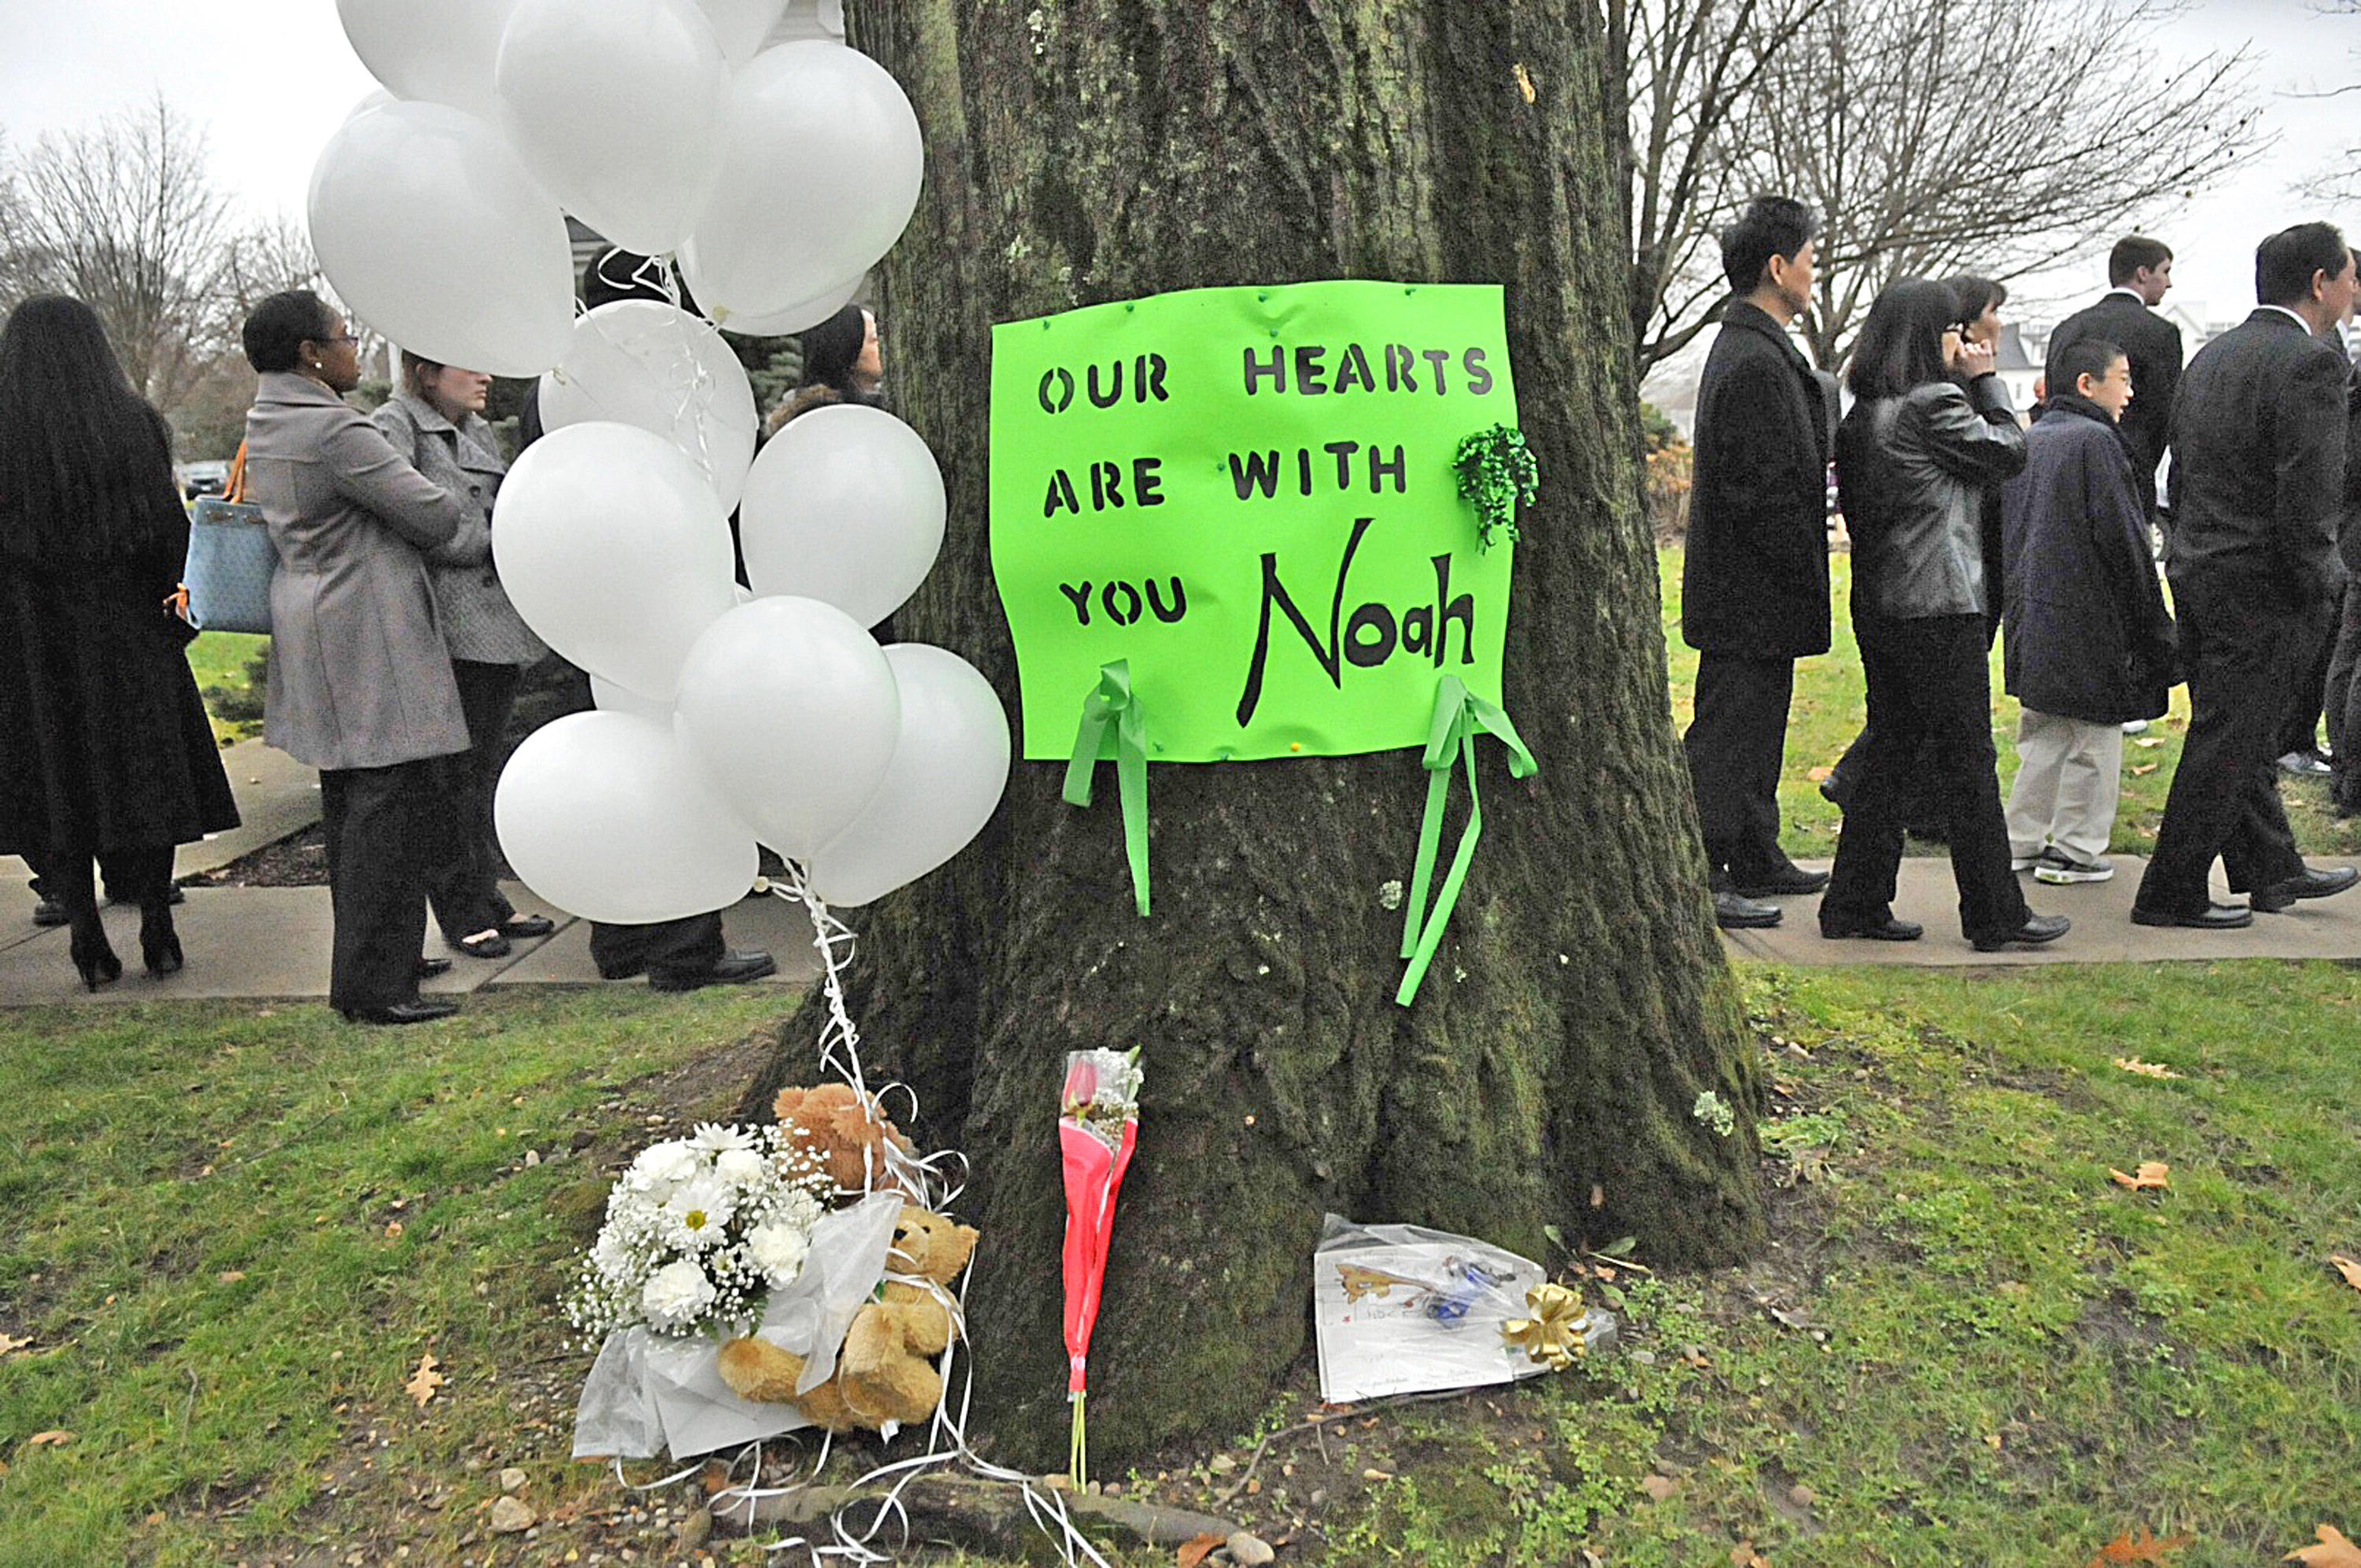 On December 12, 2012, a green poster on a tree memorializes Noah Pozner, a 6-year-old killed in the Sandy Hook school shooting.